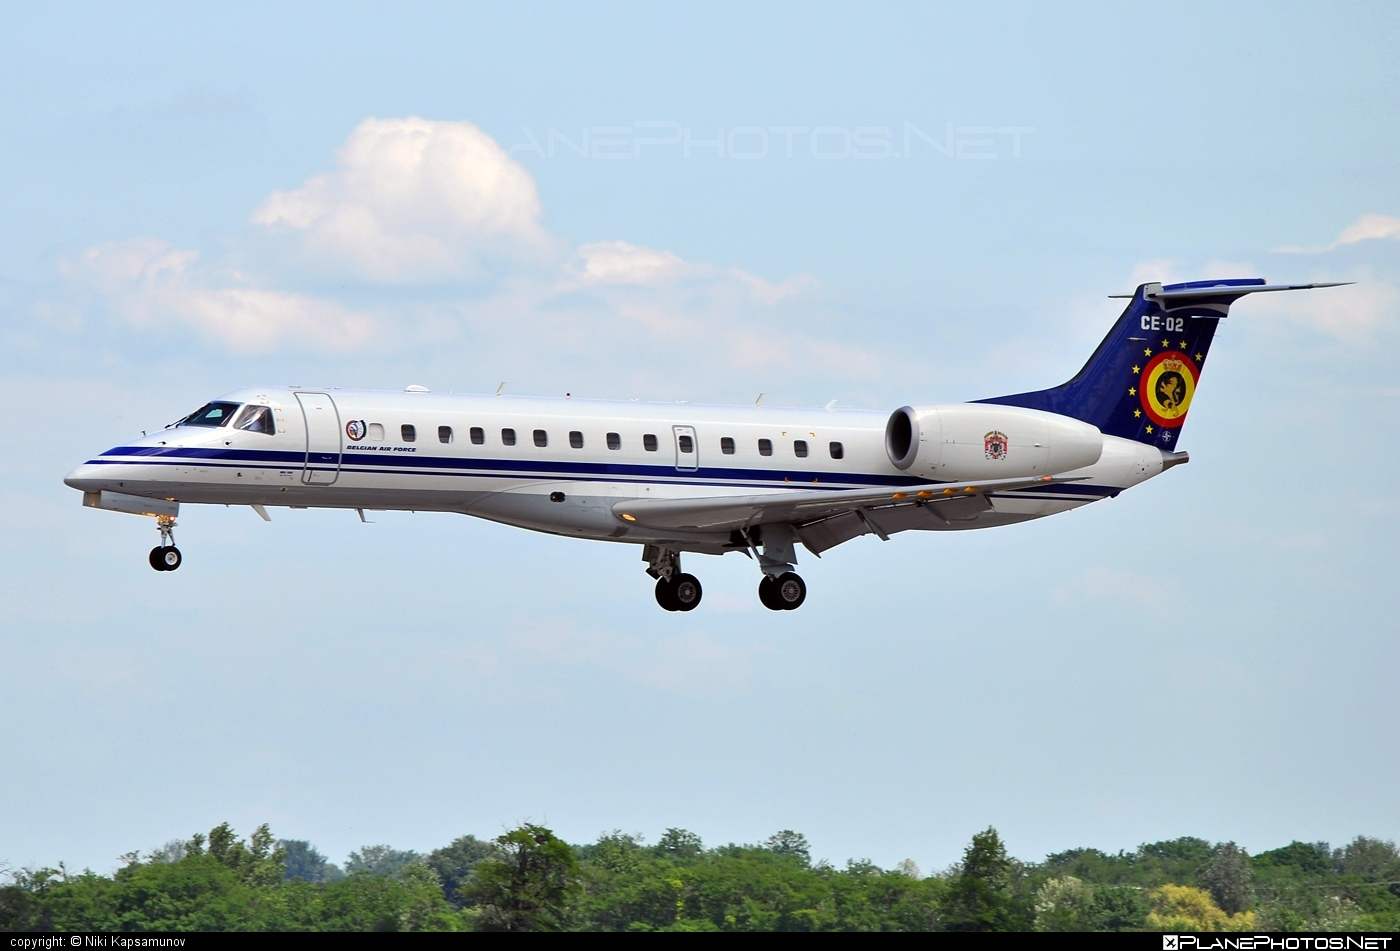 Embraer ERJ-135LR - CE-02 operated by Luchtcomponent (Belgian Air Force) #belgianairforce #embraer #luchtcomponent